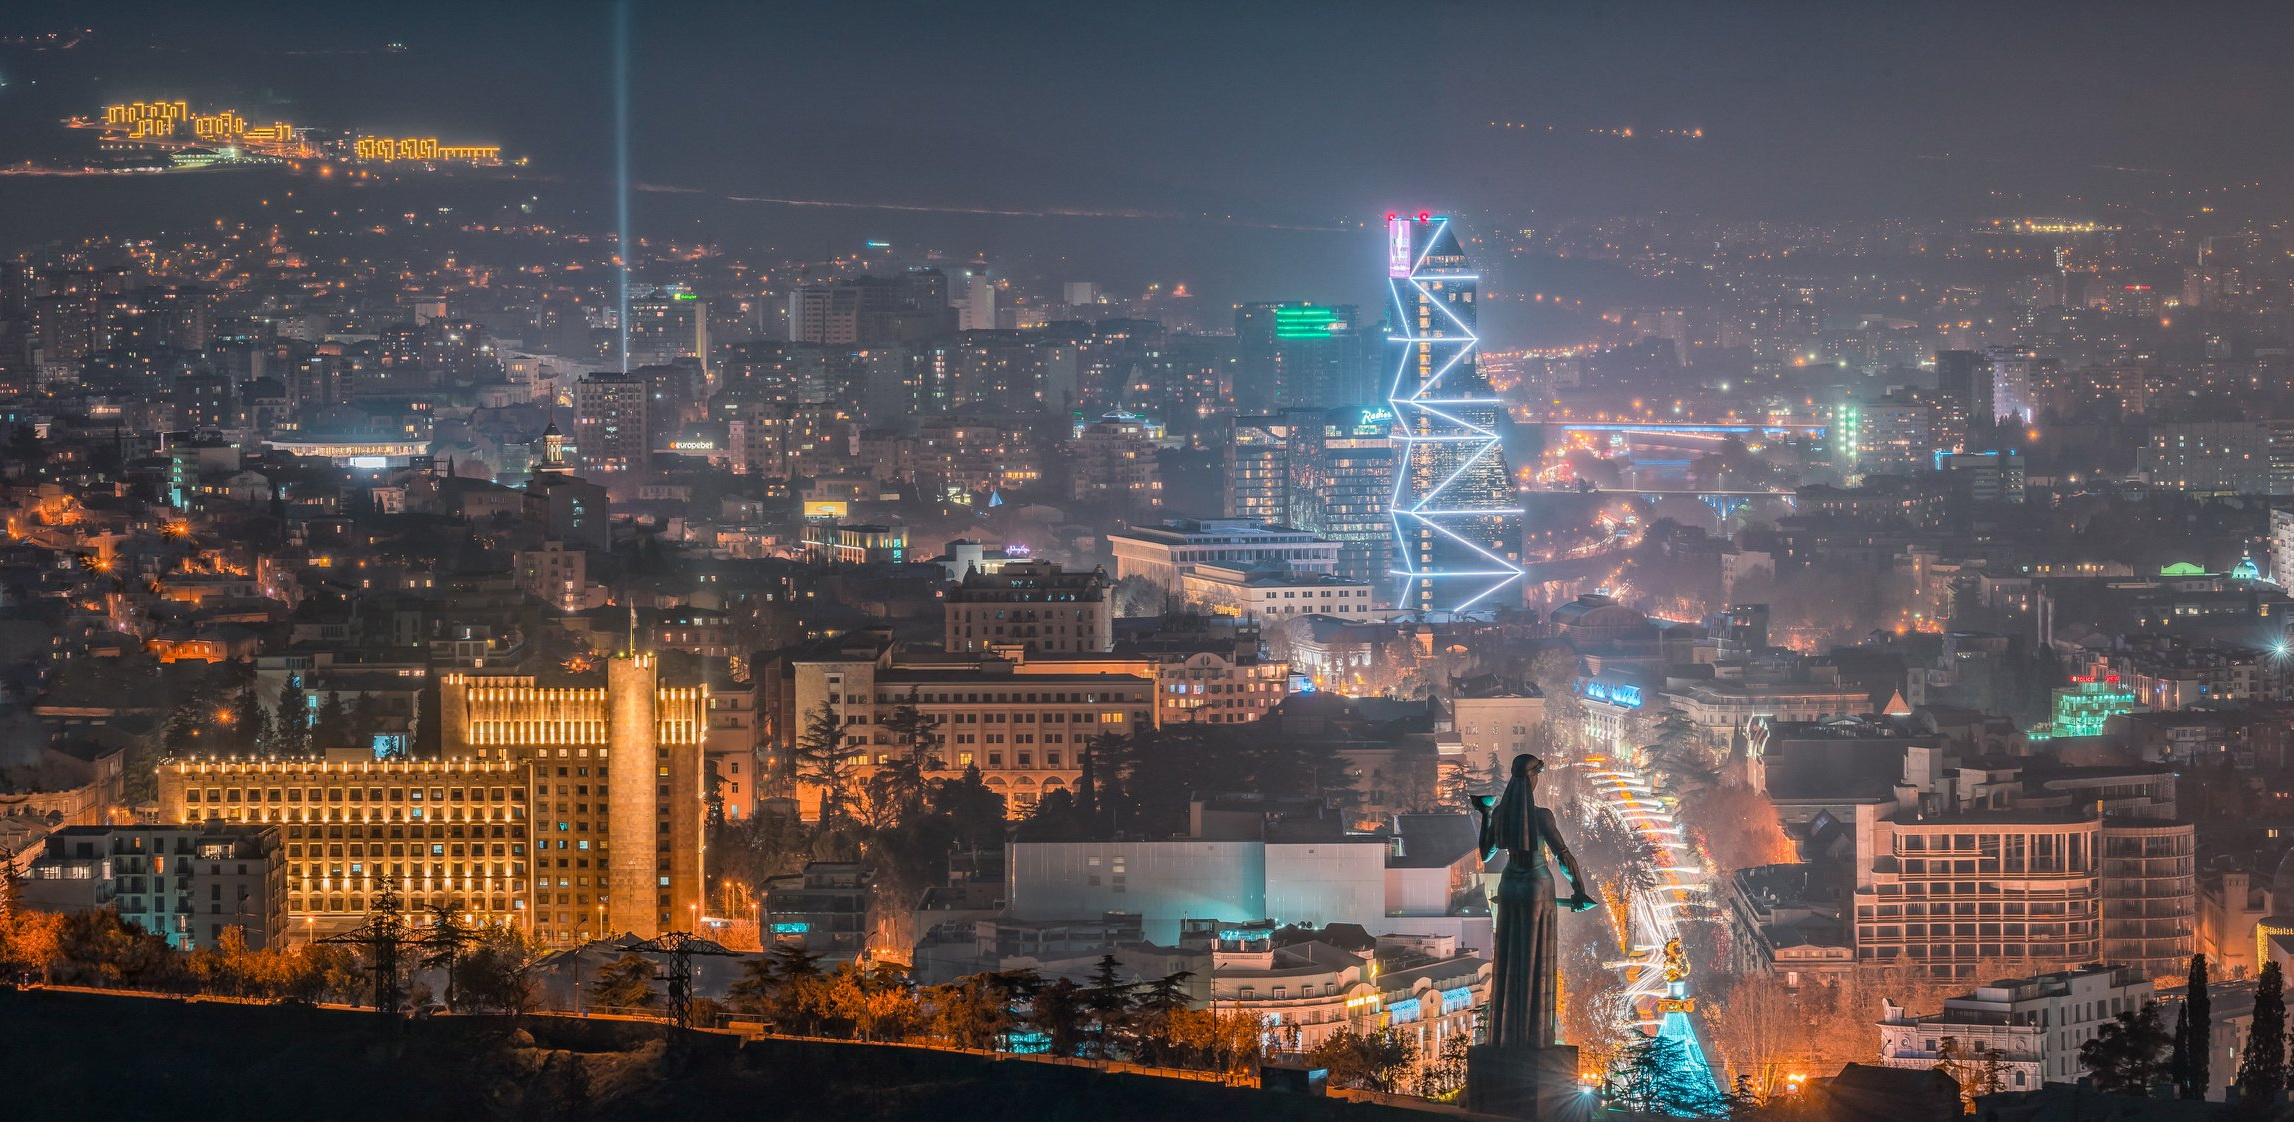 night_tbilisi